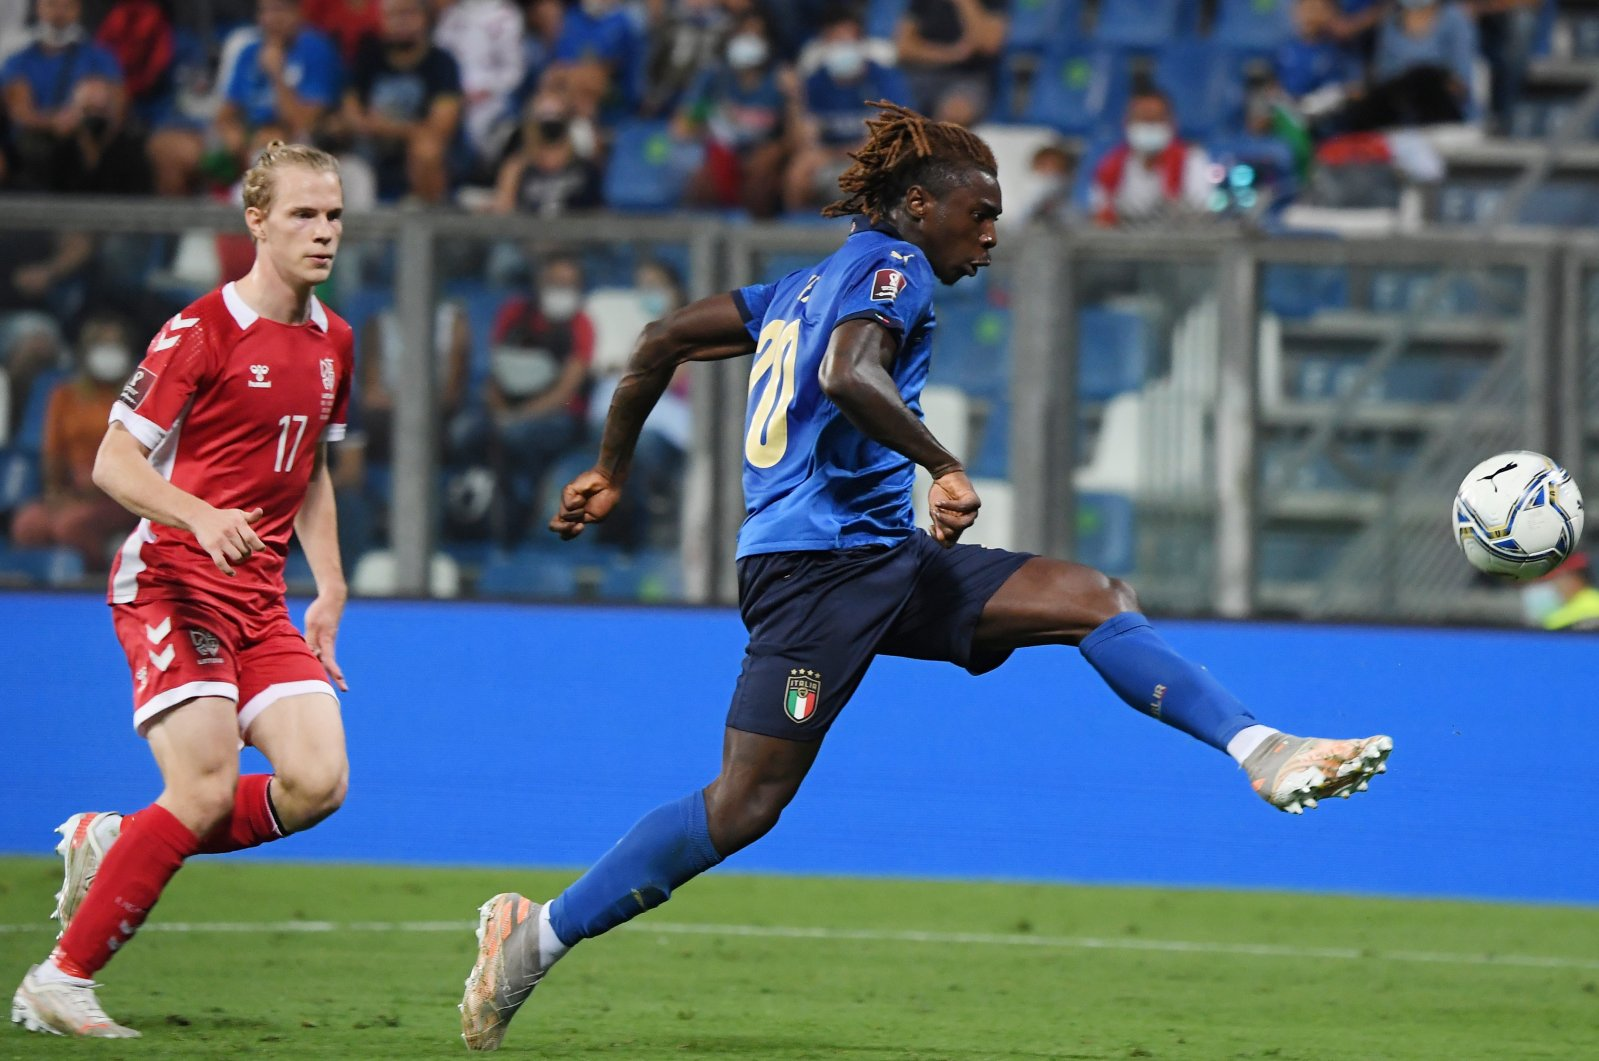 Italy's Moise Kean scores his side's fourth goal in a World Cup 2022 European qualifier against Lithuania at Mapei Stadium, Reggio Emilia, Italy, Sept. 8, 2021.